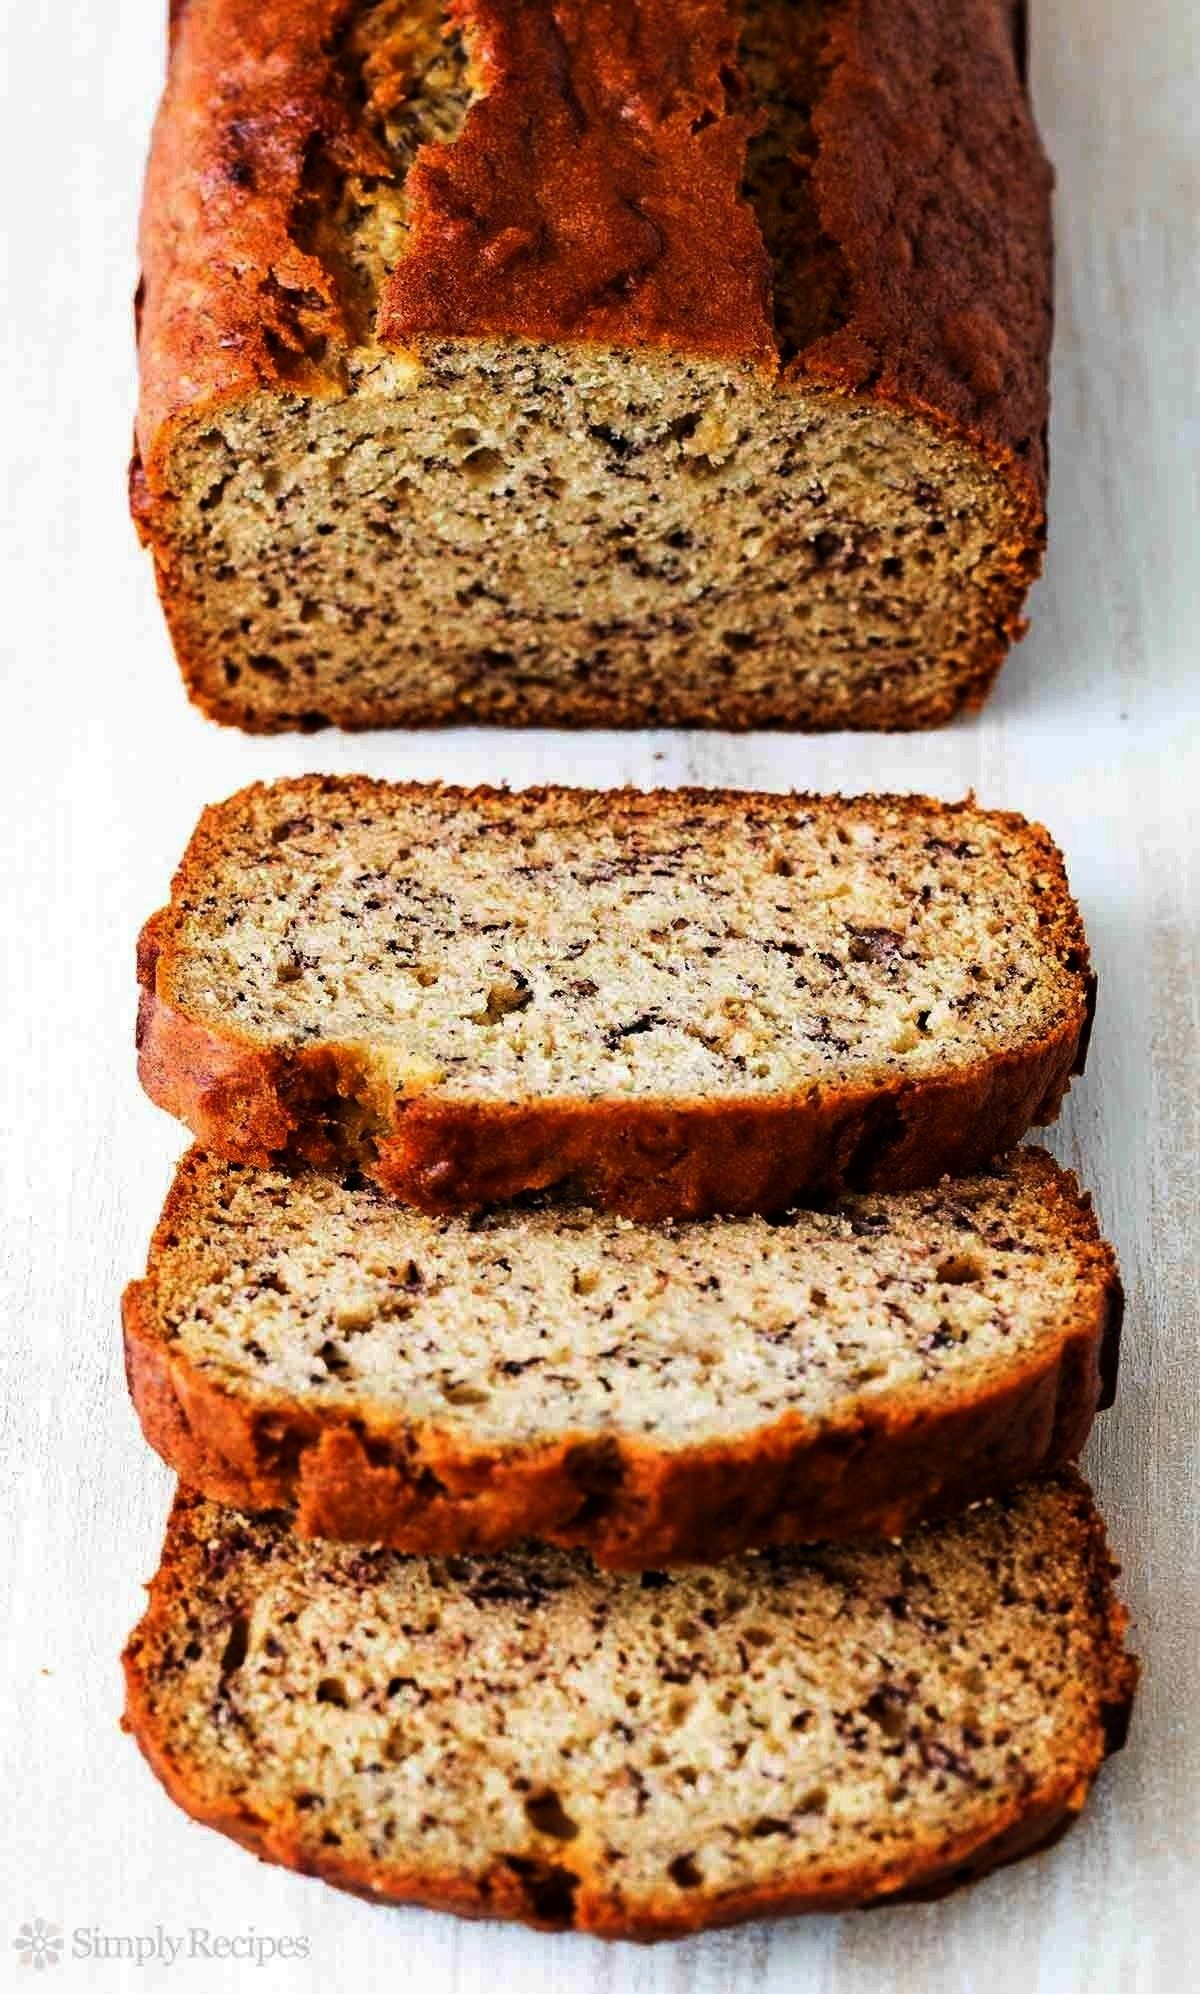 with video This Bread Recipe with video is a better for your dessert made with wholesome ingredients Dairy Gluten Free grain free and paleo too Our bread recipe Recipes v...